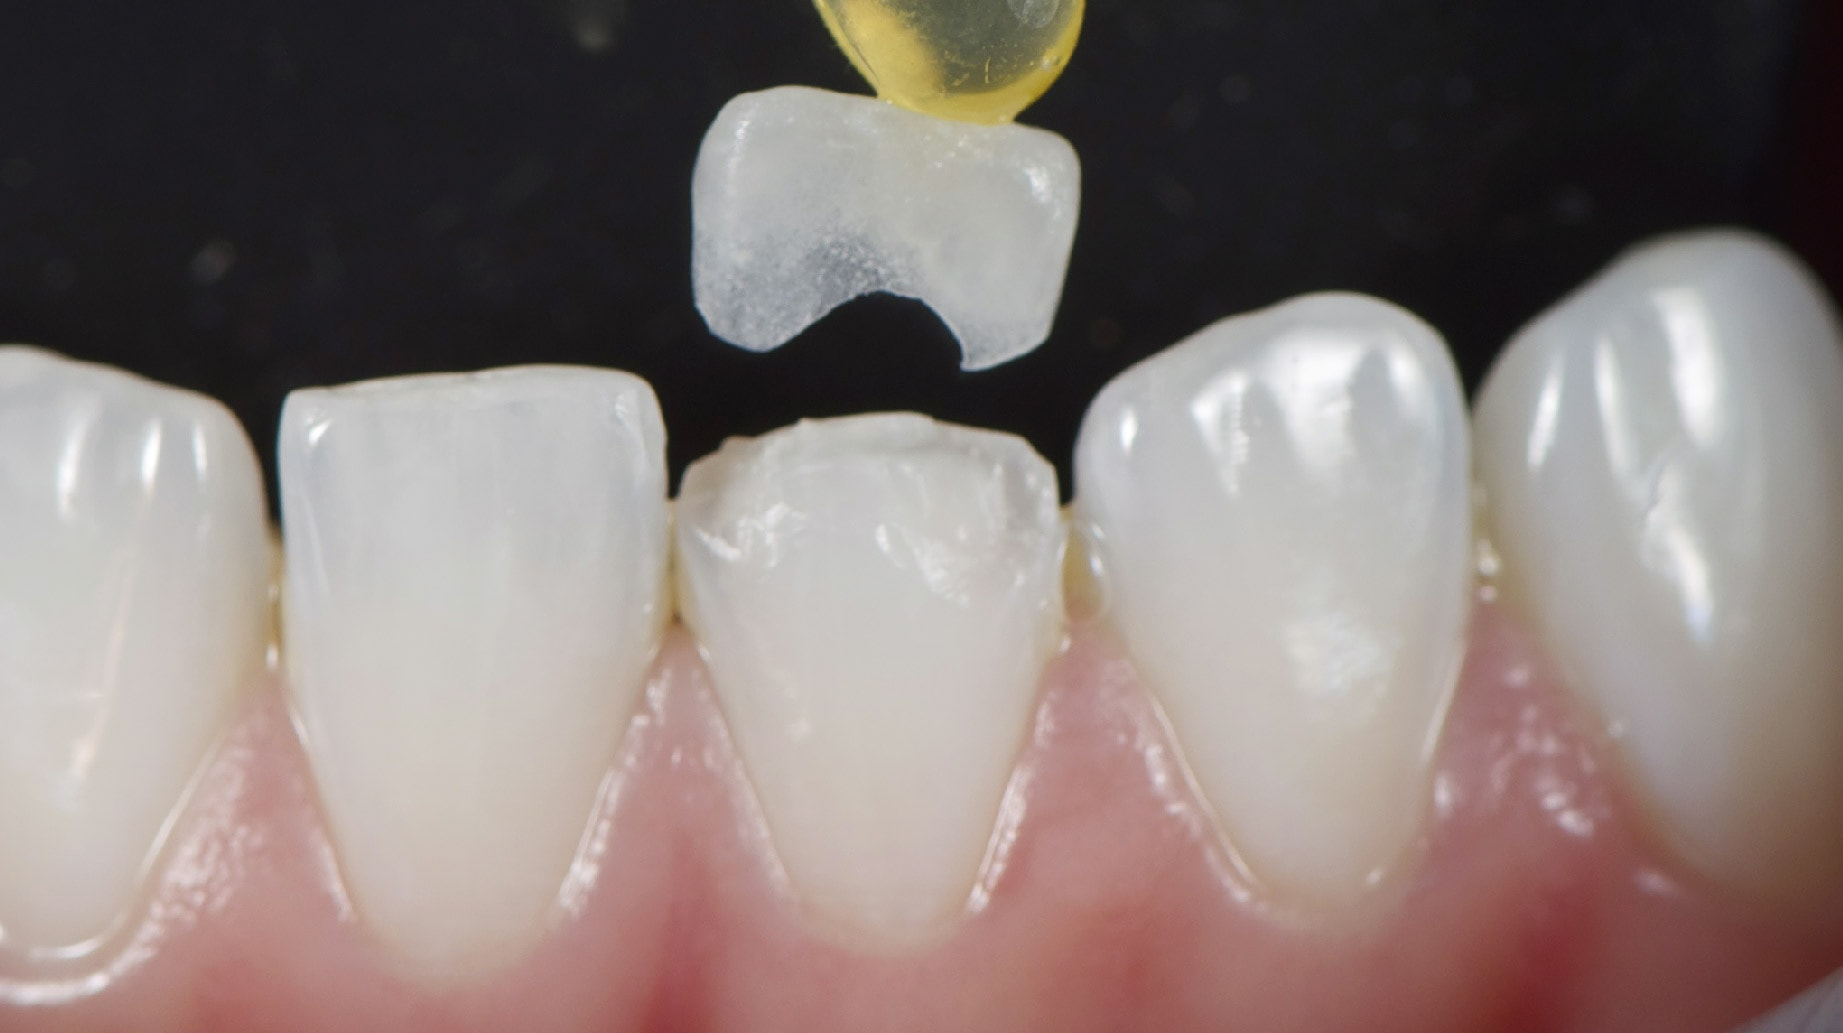 Quote request for a dental prosthesis